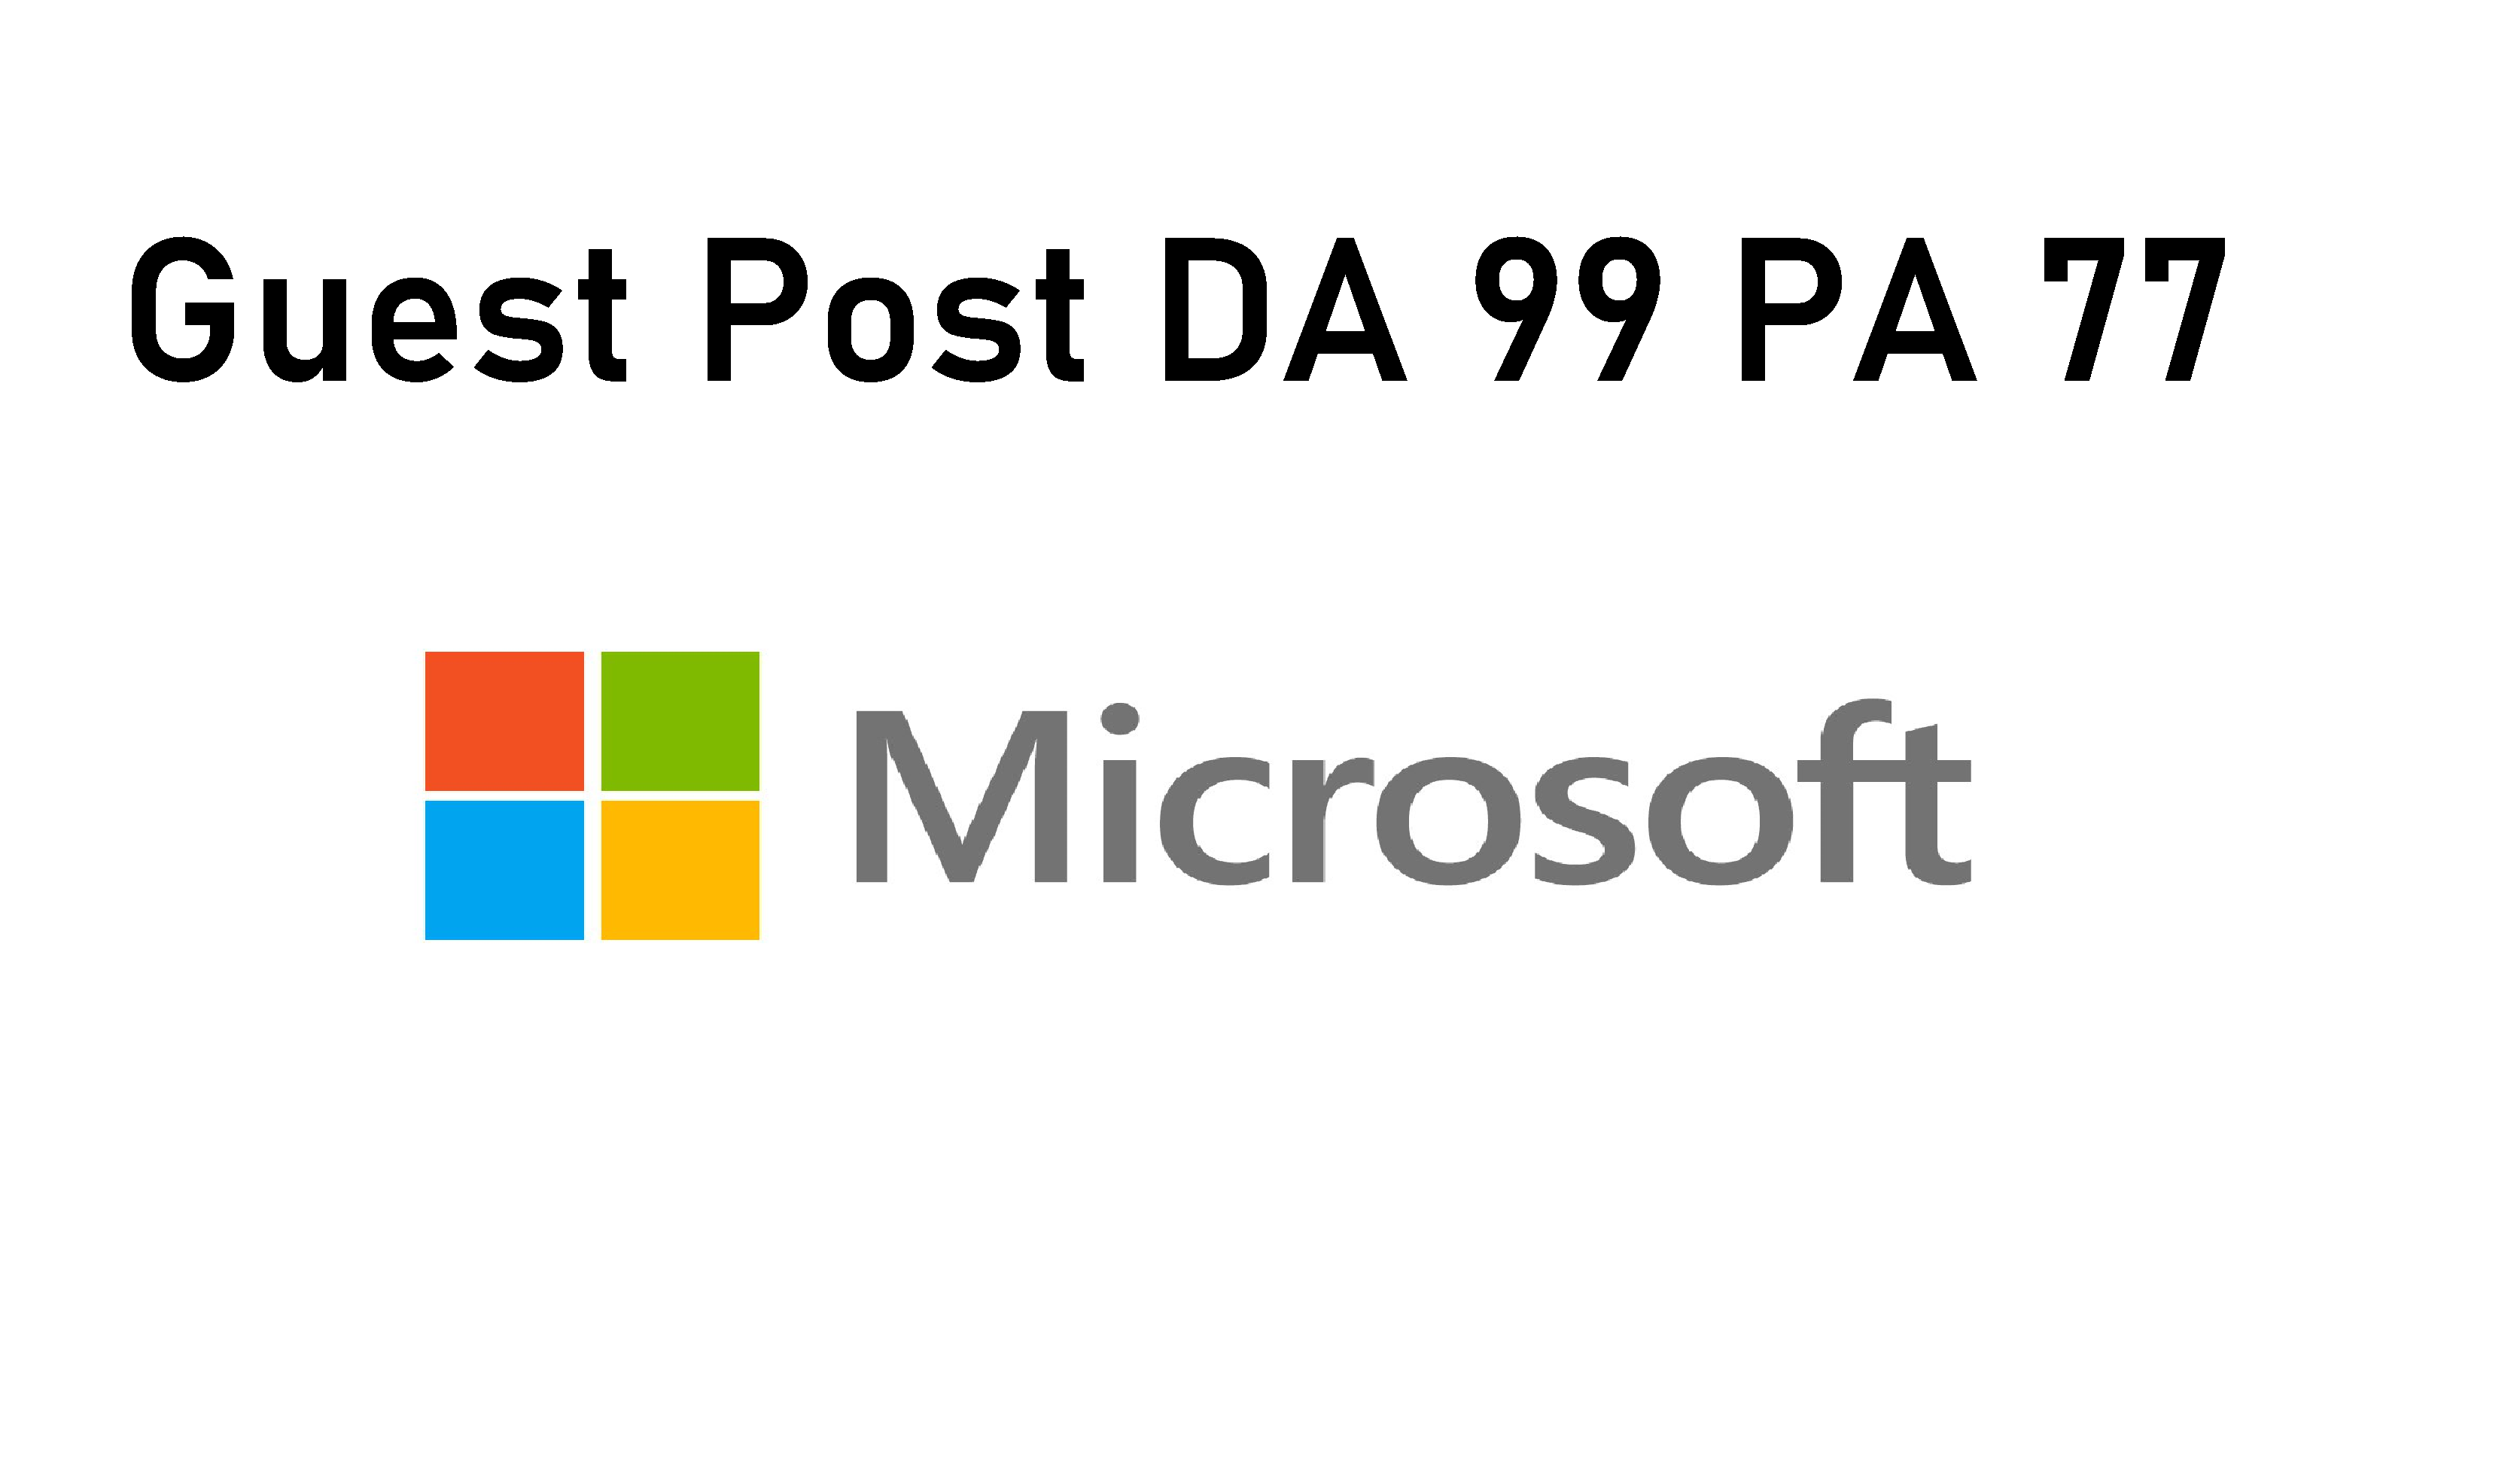 I Will Publish Guest Post on Trainingsupport. Microsoft High Authority Sites